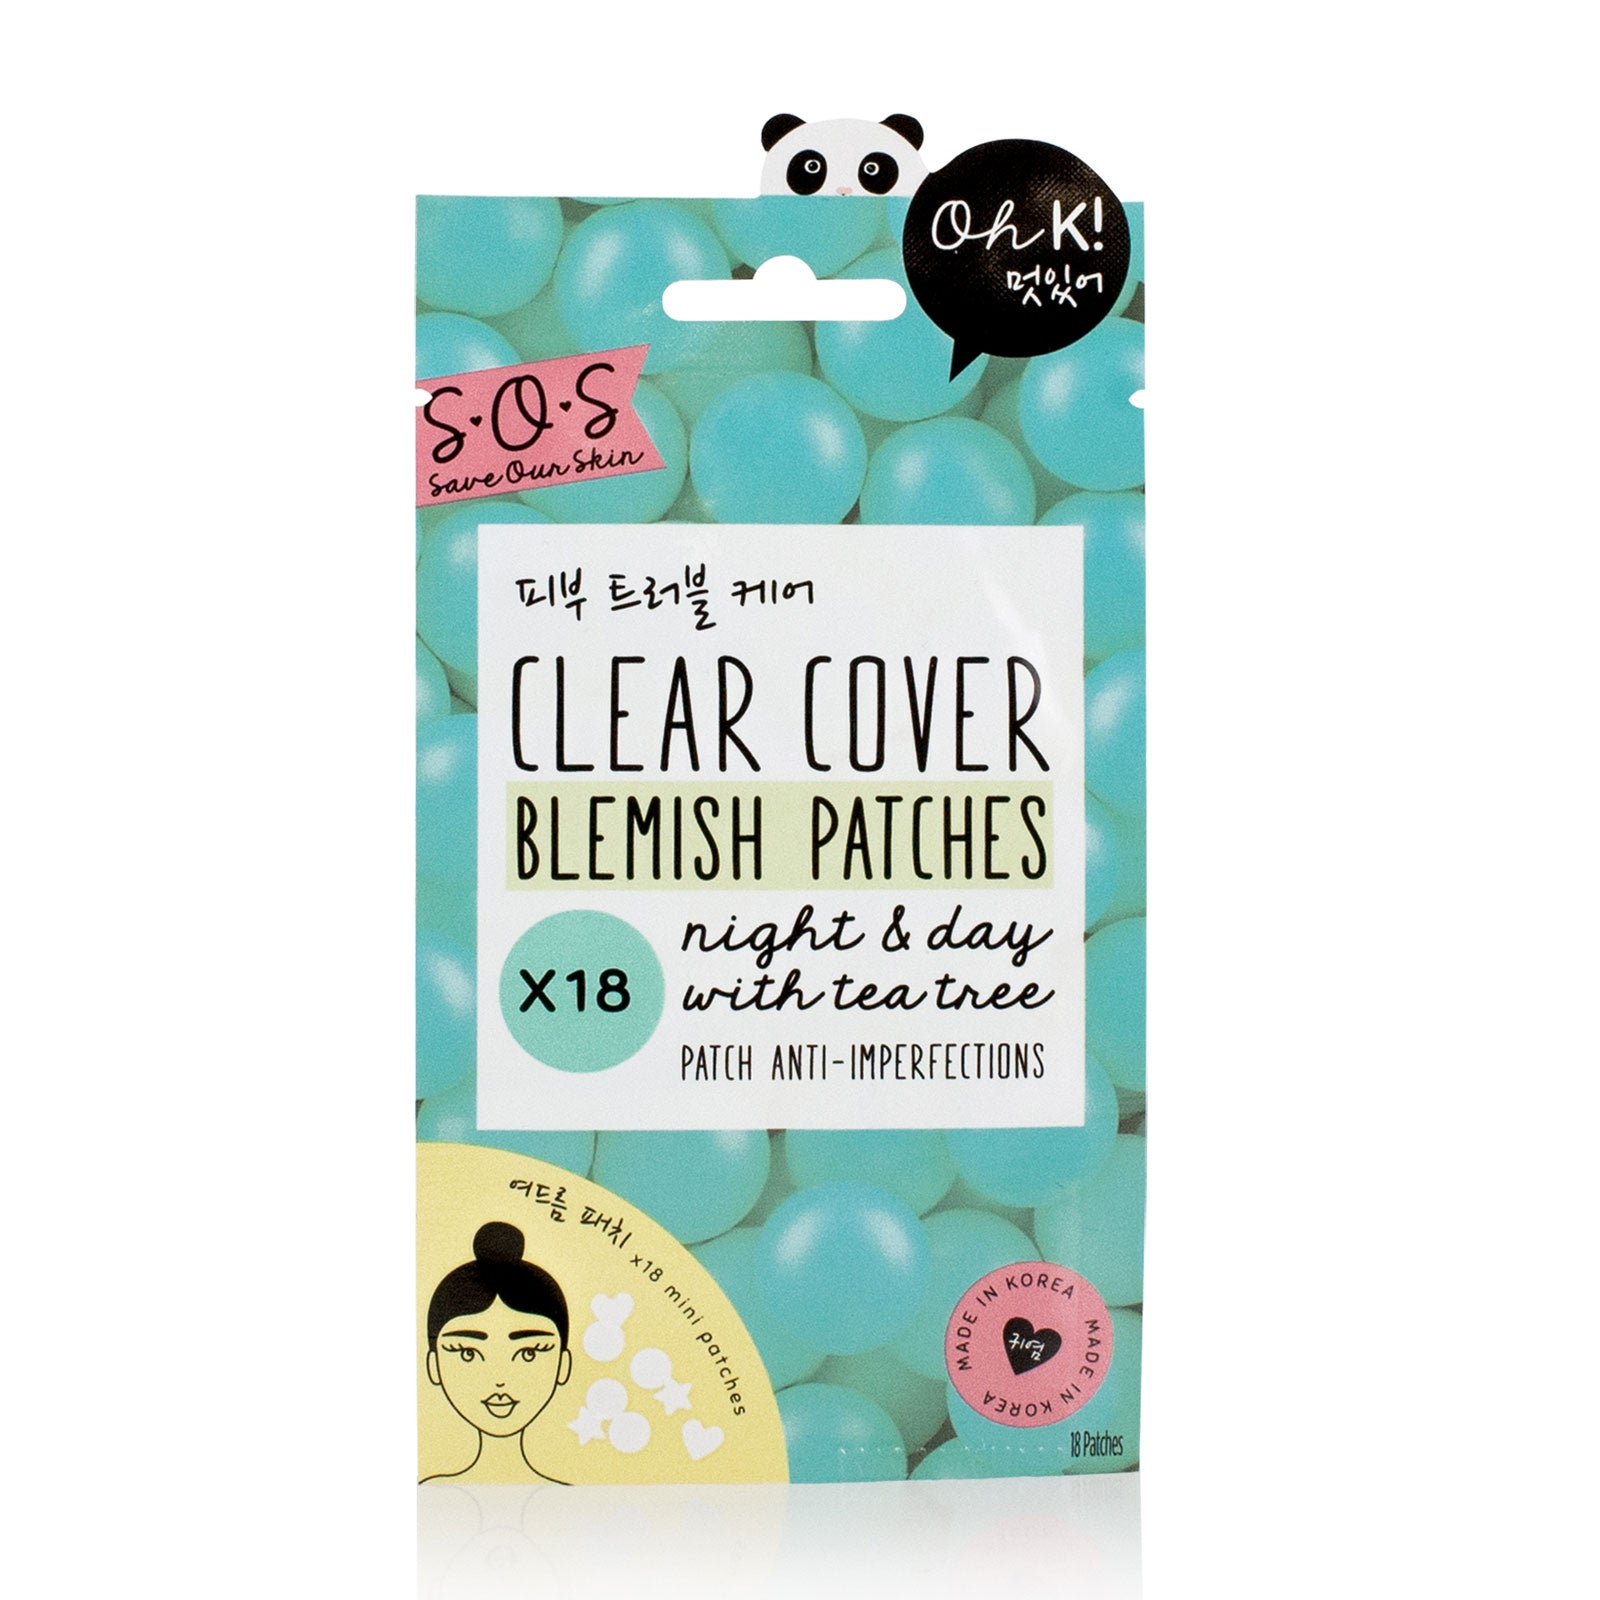 Oh K! Clarifying Blemish Patches x 18